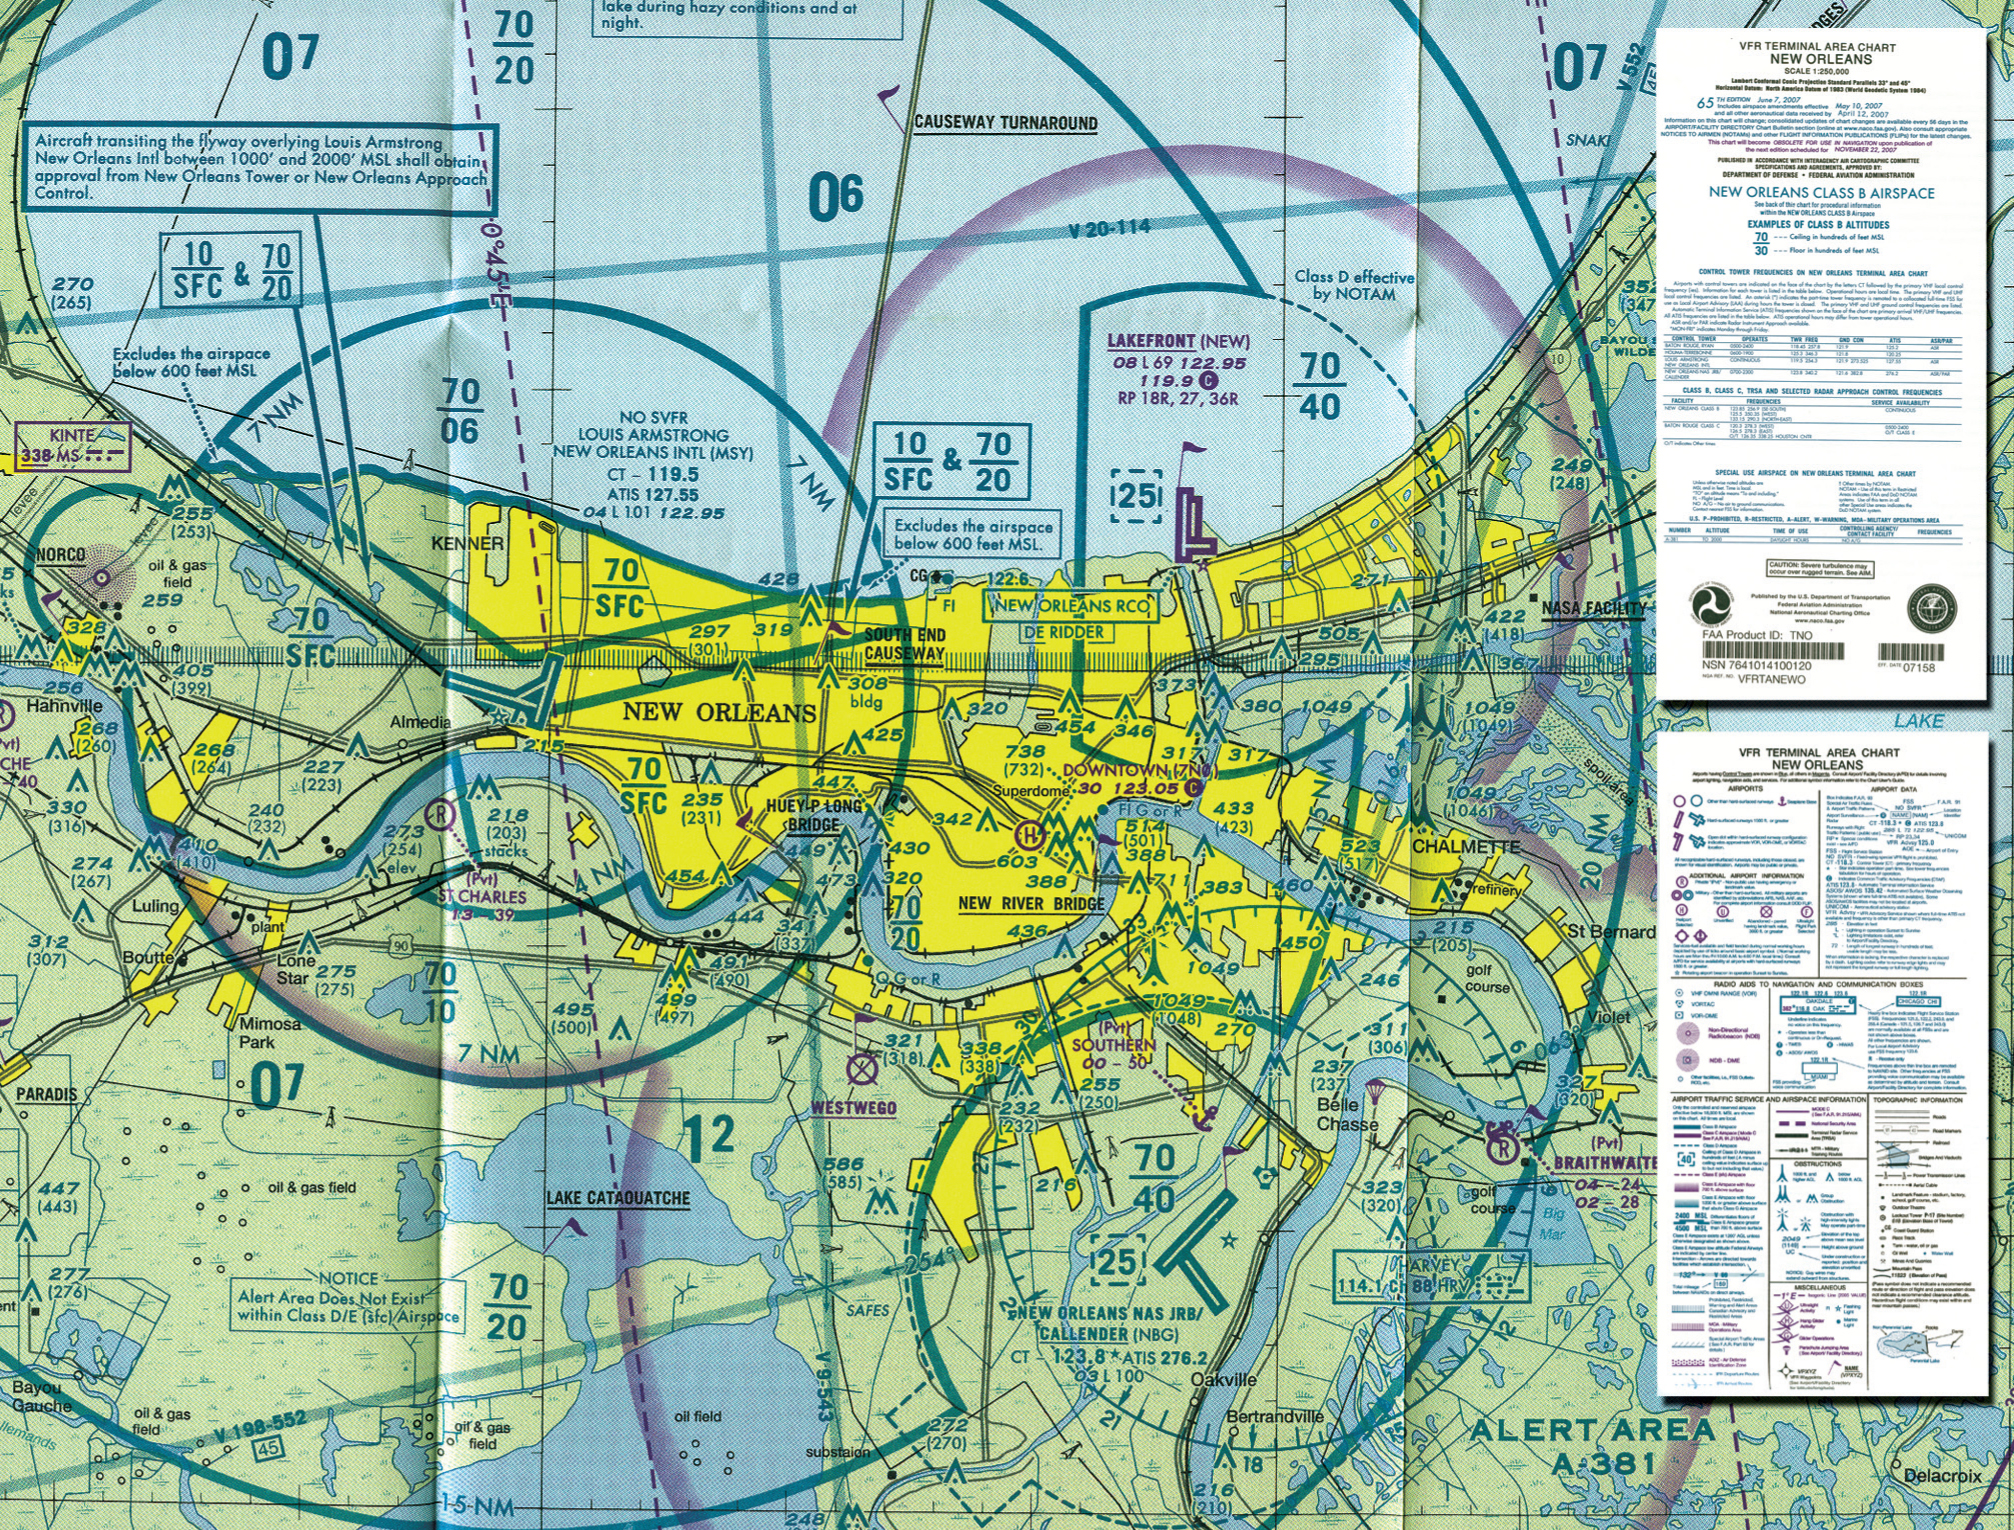 Vfr Terminal Area Chart And Legend